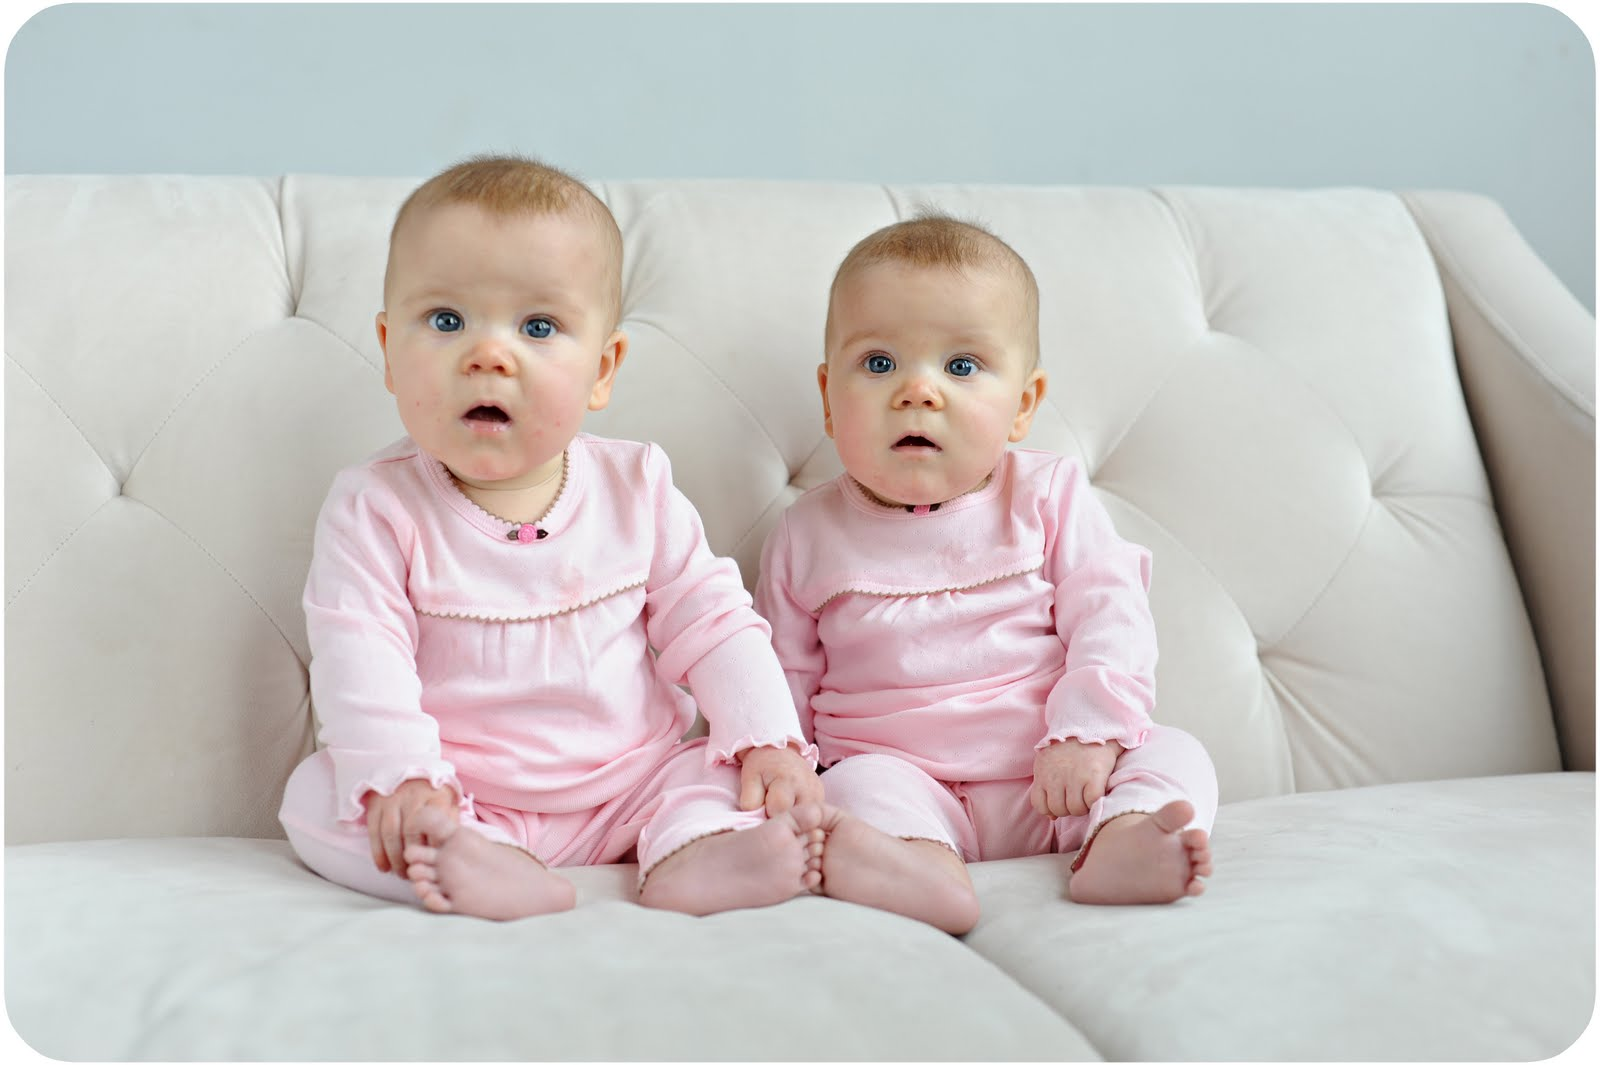 identical twin newborn babies - photo #3